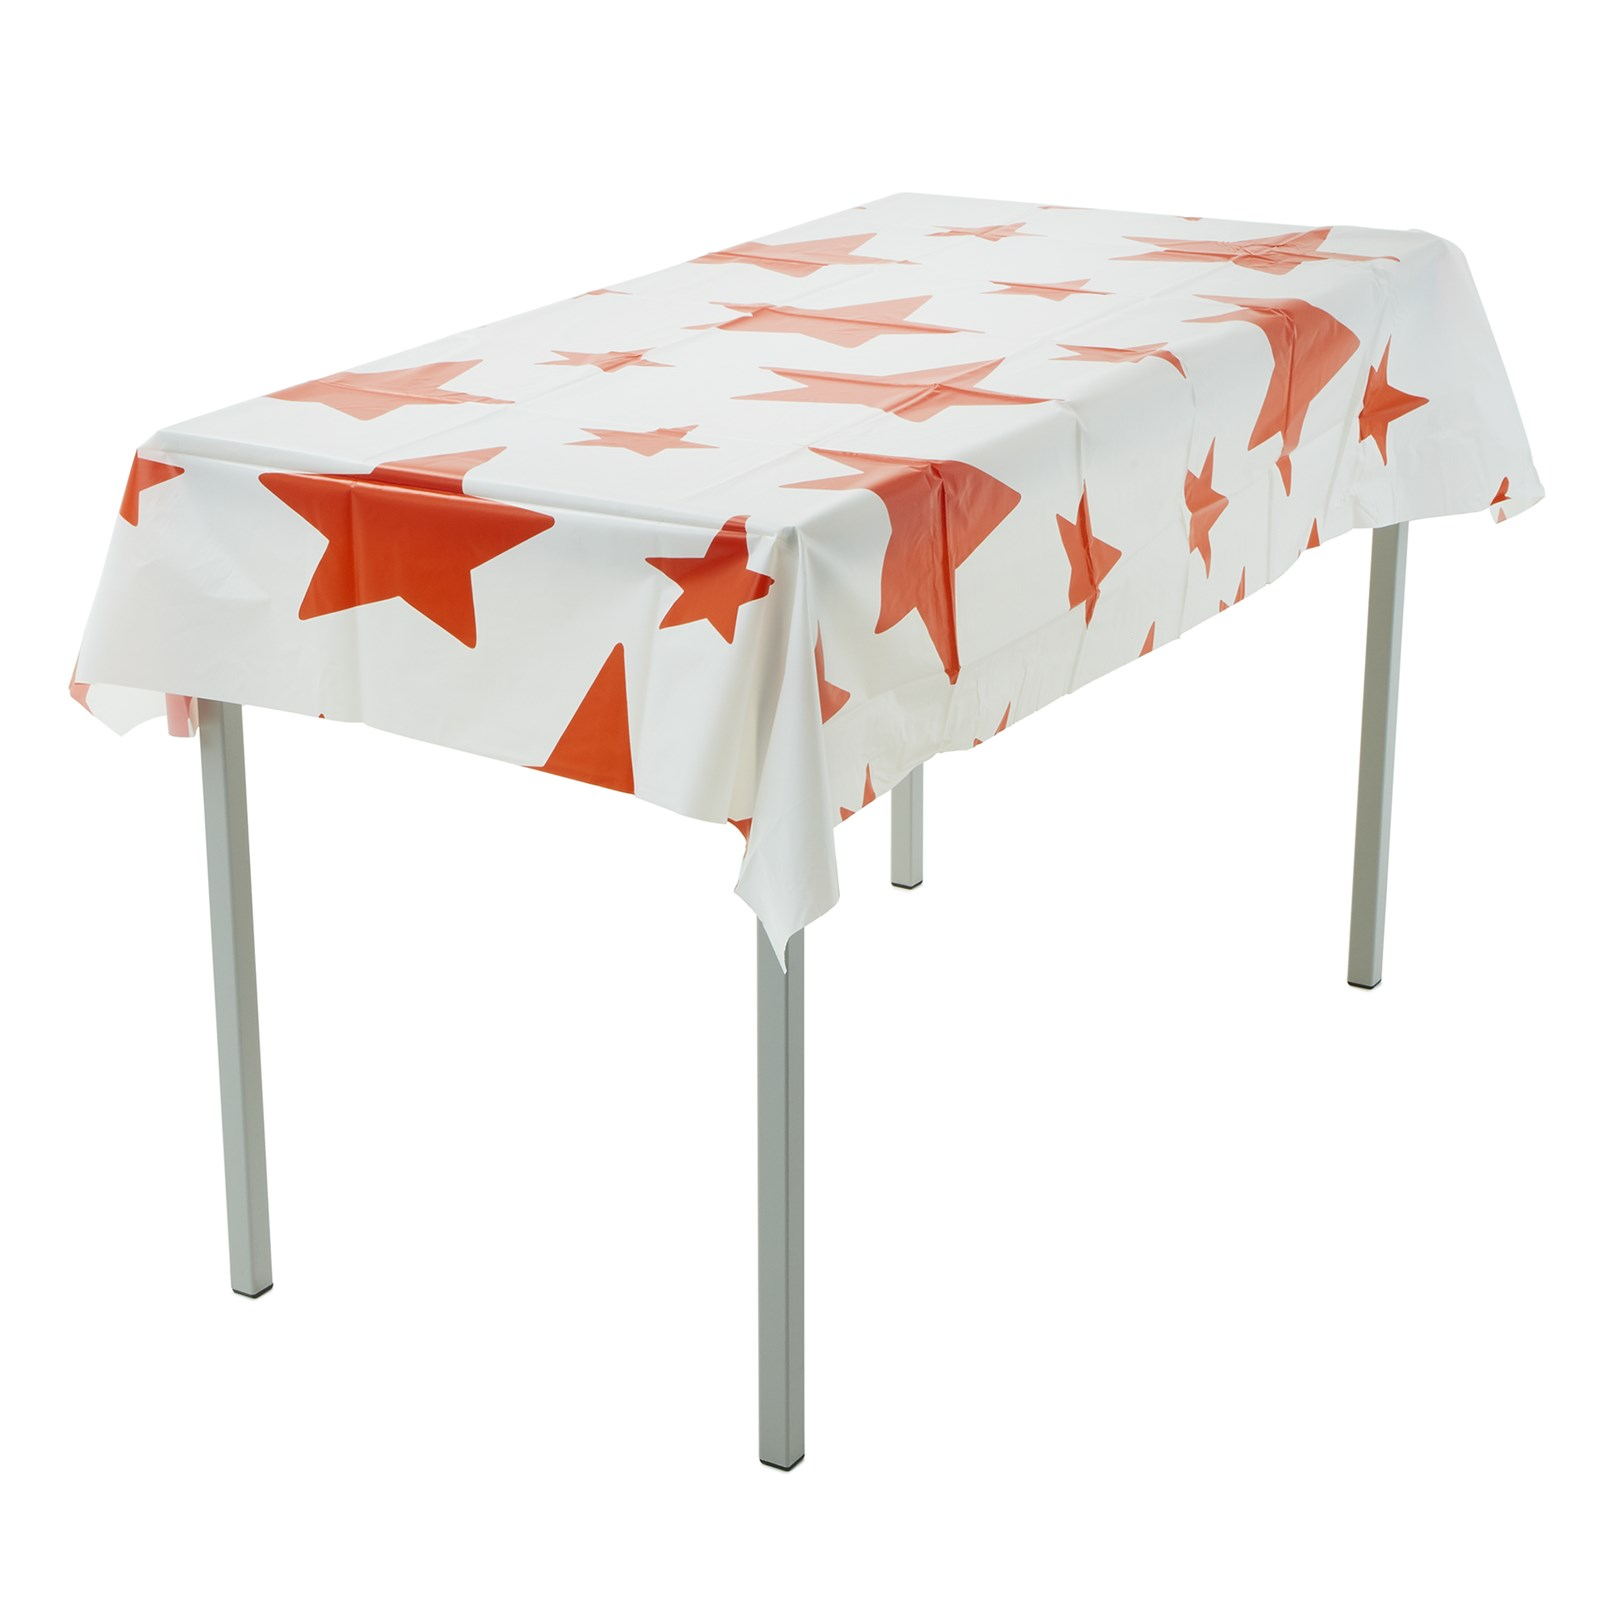 3 for 2 - Table Cover